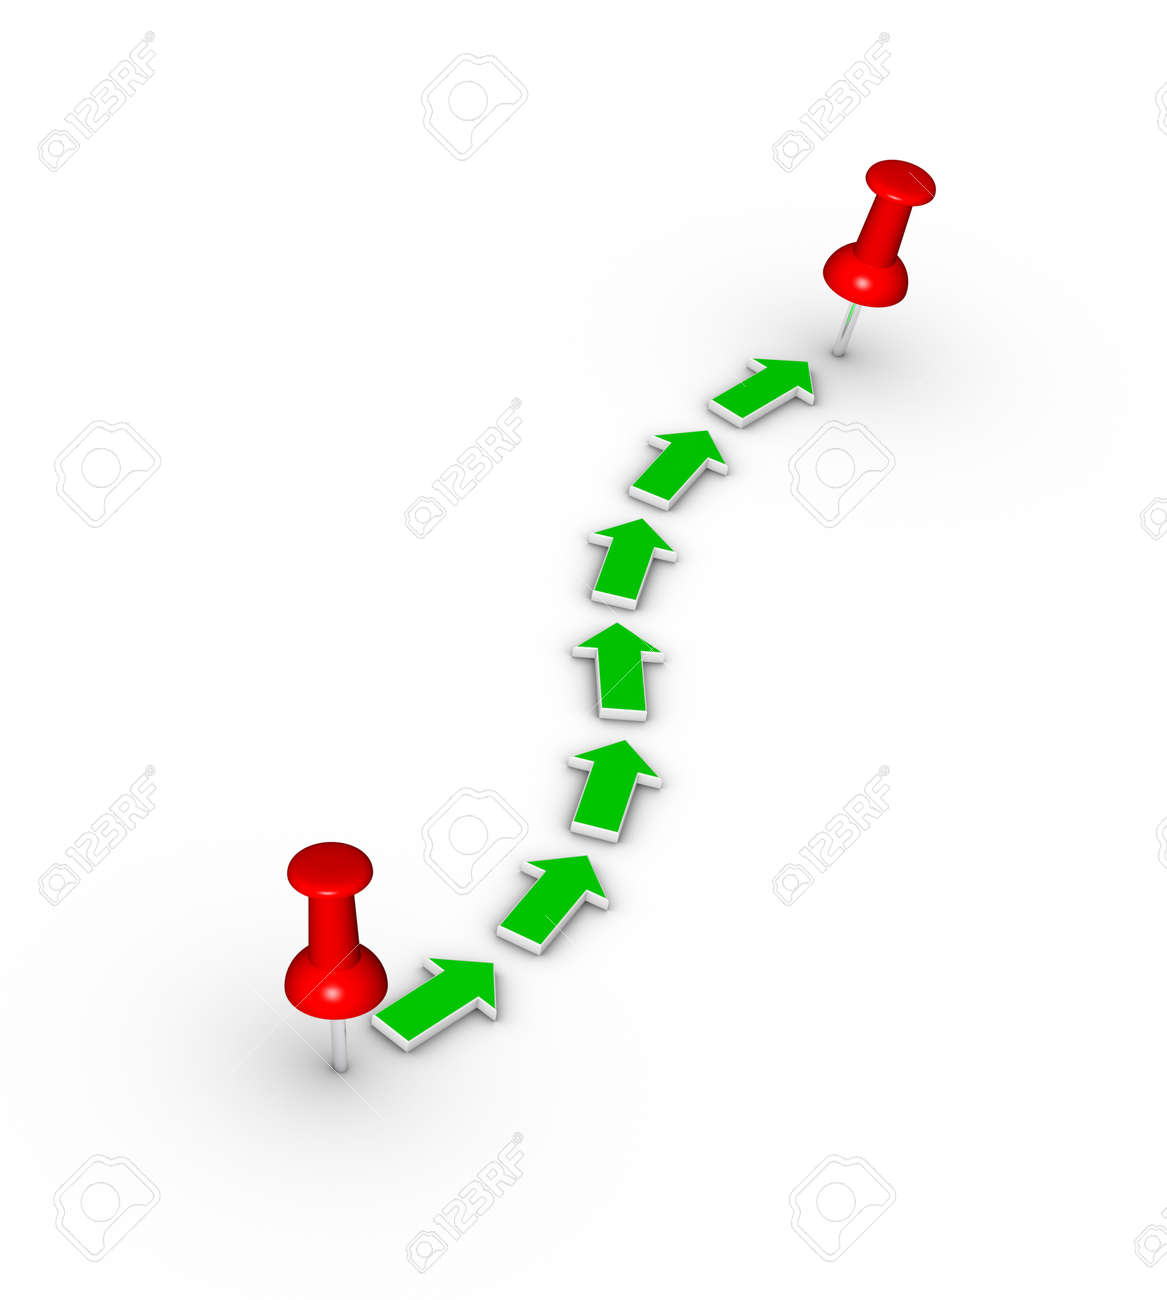 point-to-point travel route with red thumbtacks and green arrows Stock Photo - 10587521